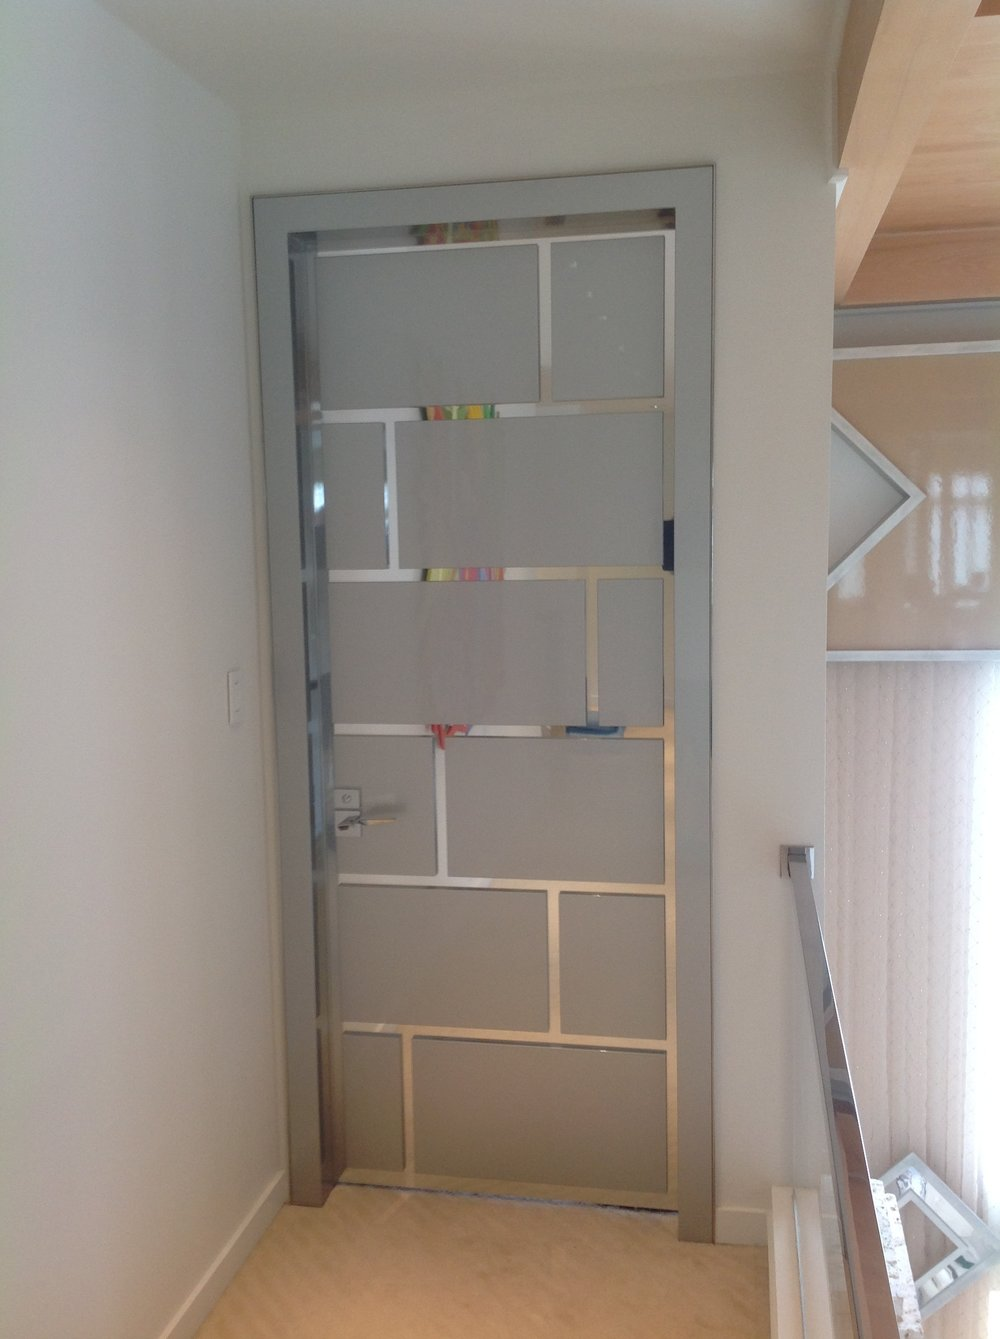 stainless steel and nuvacor bedroom door